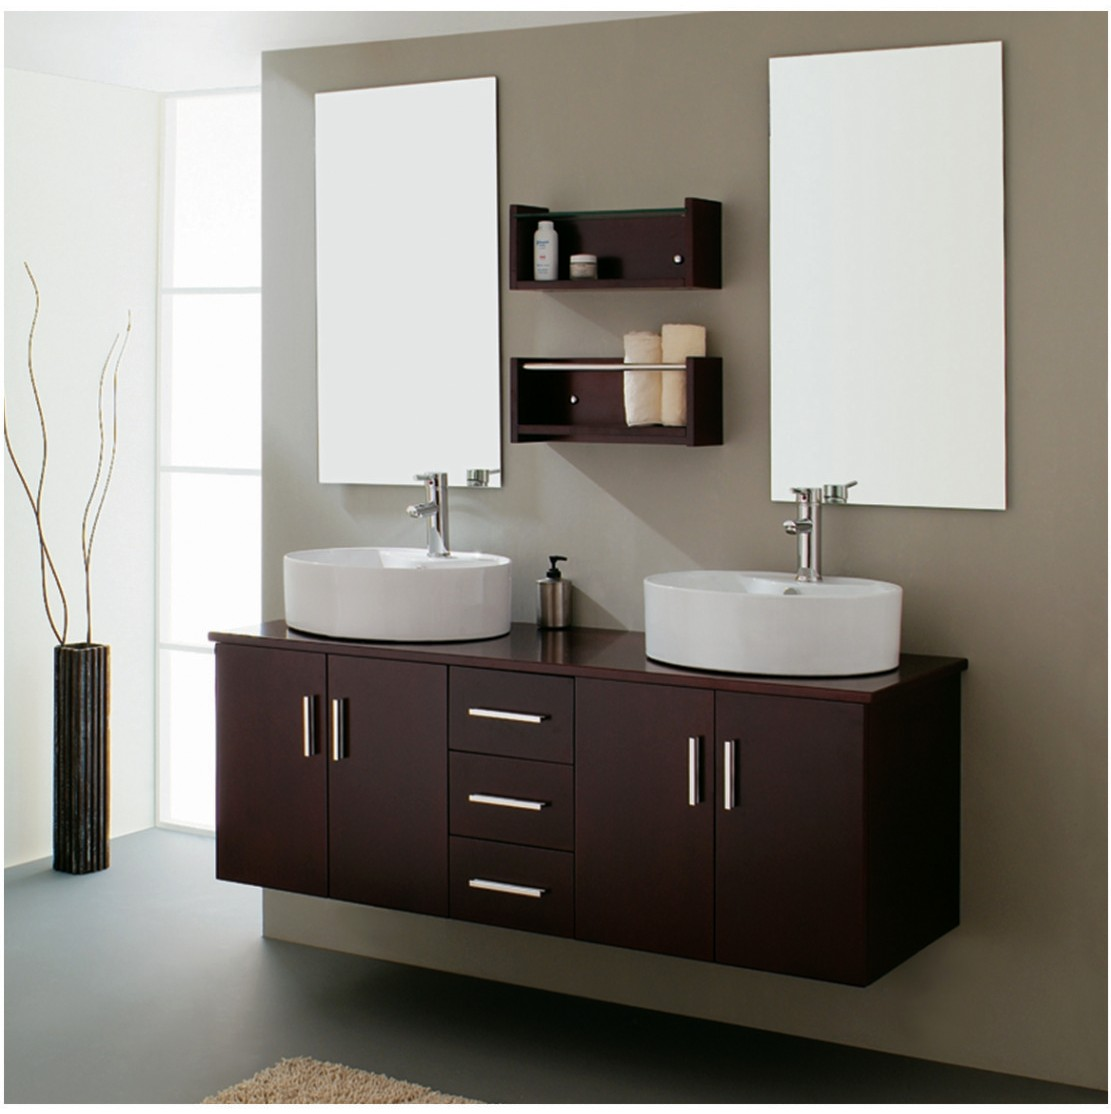 modern bathroom vanity set milano iii